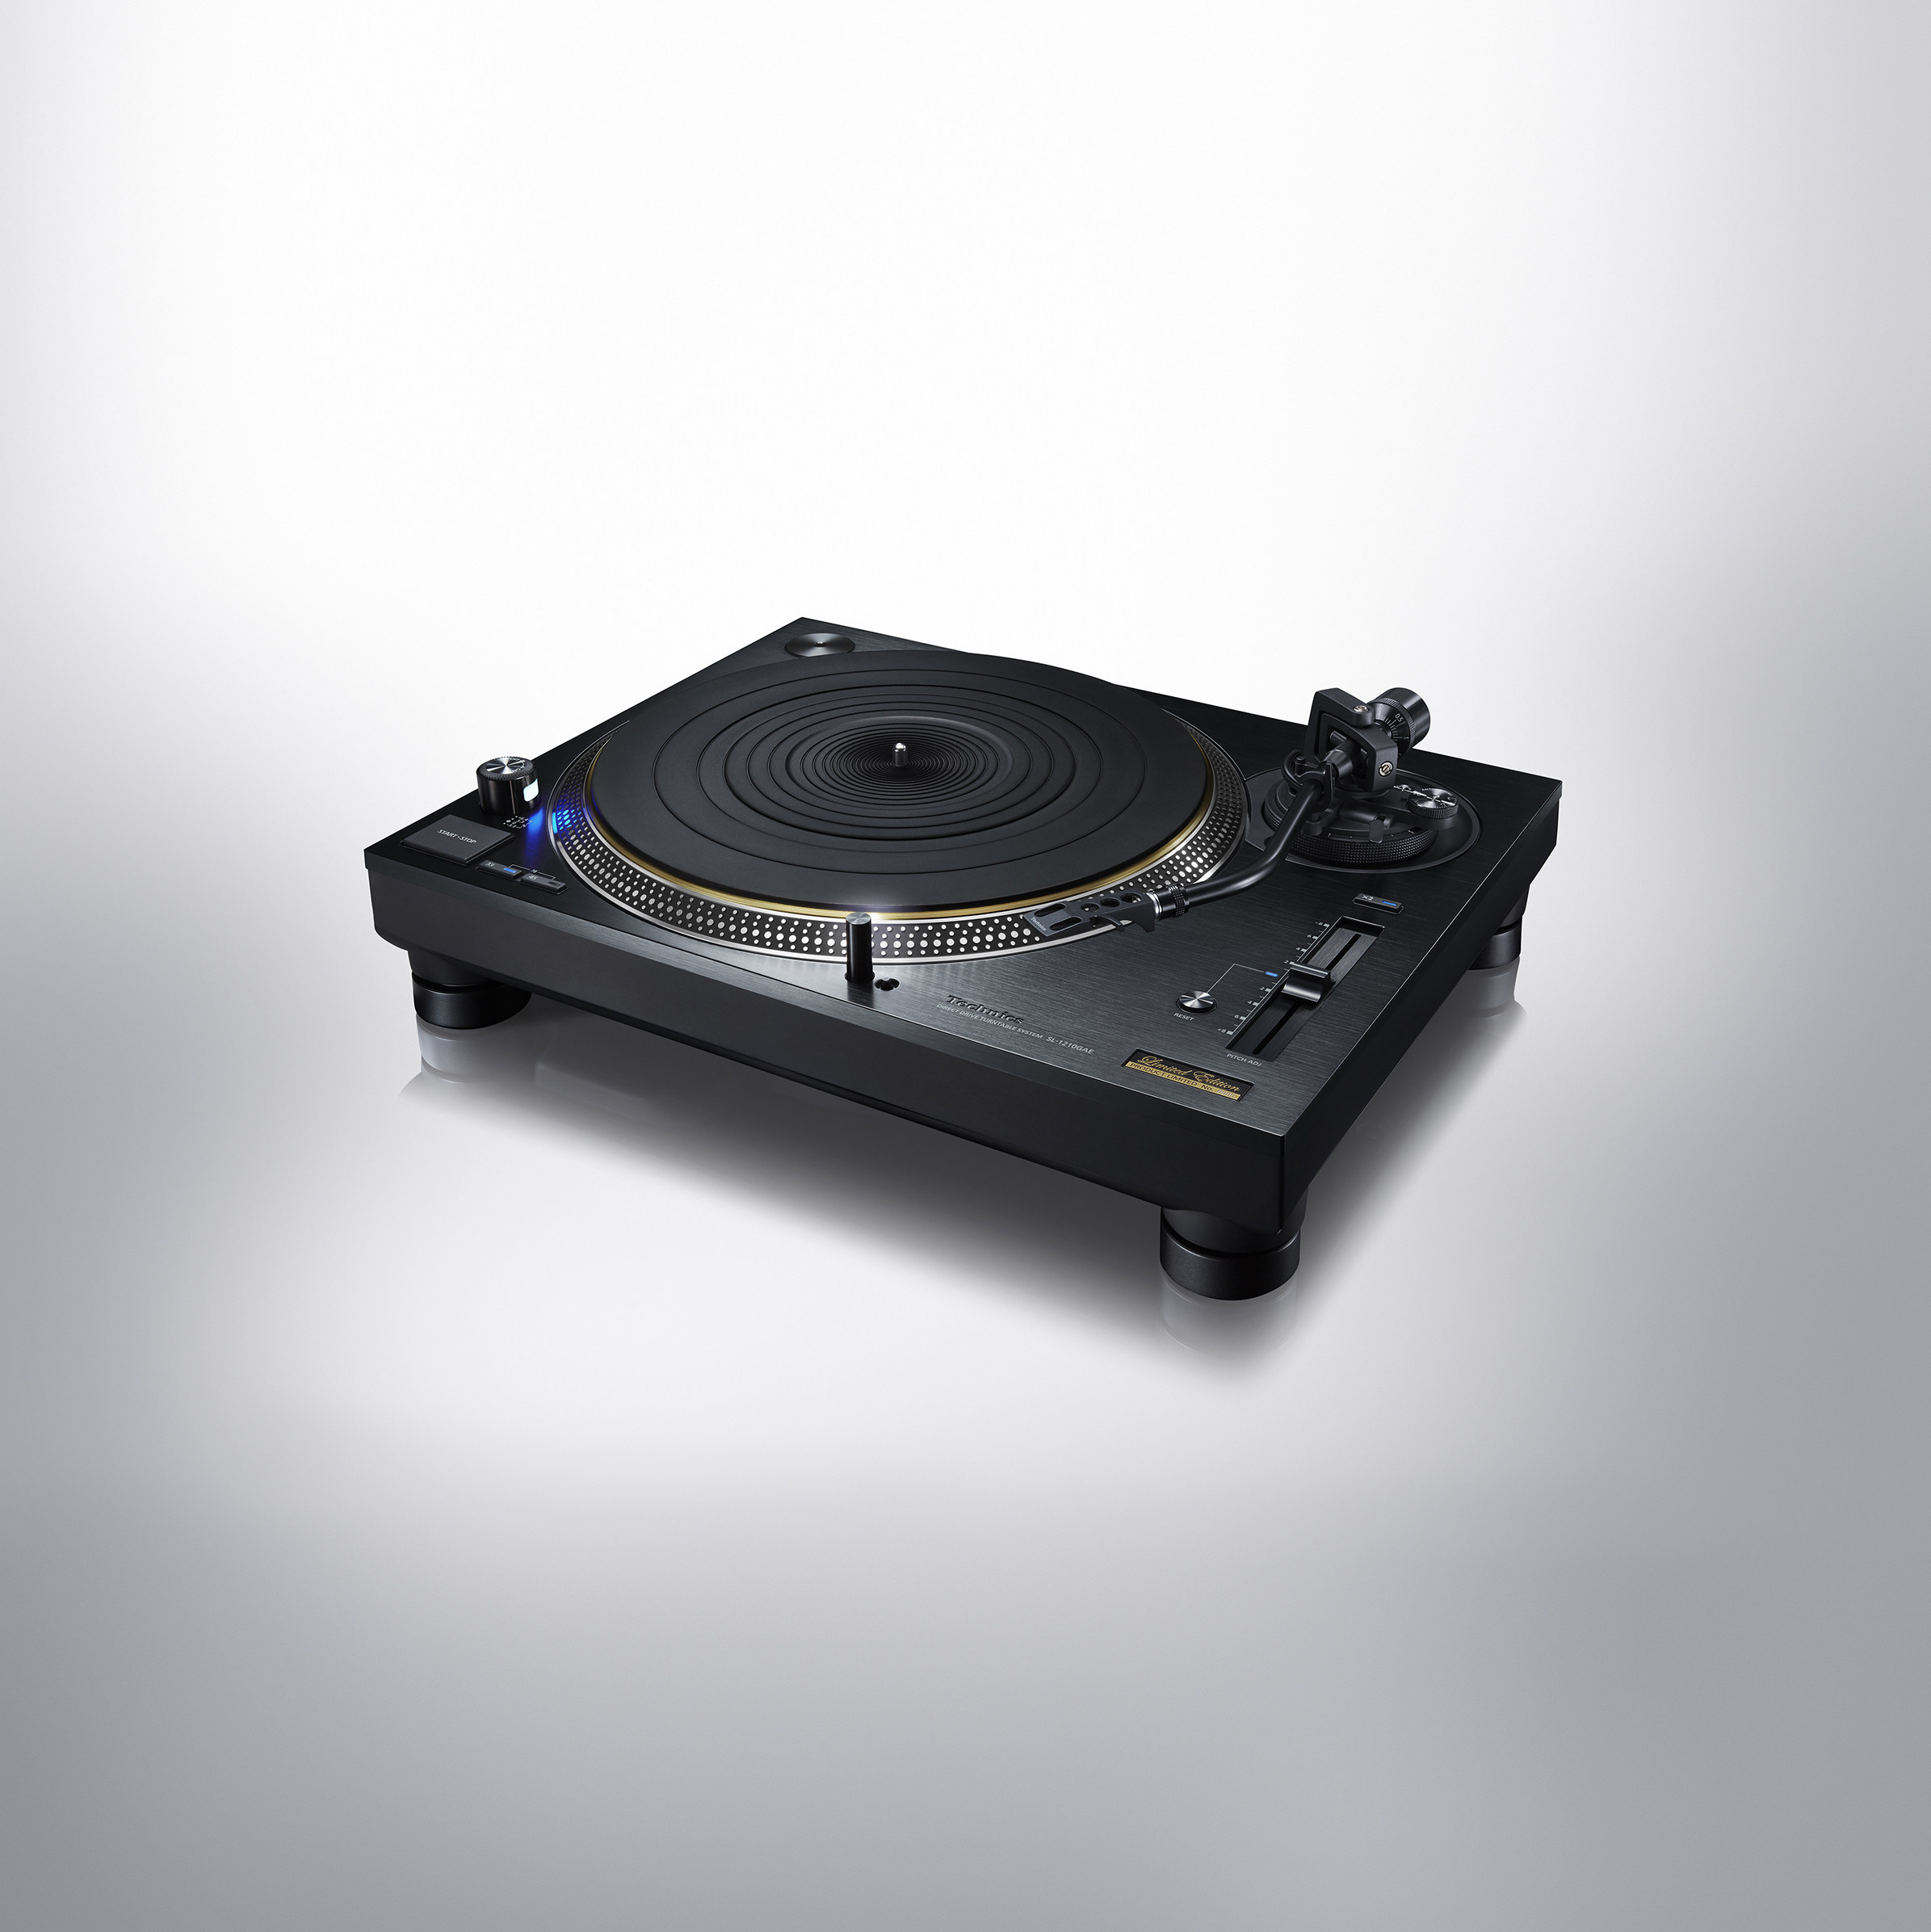 The Technics SL-1210GAE turntable is limited to just 1,000 units worldwide